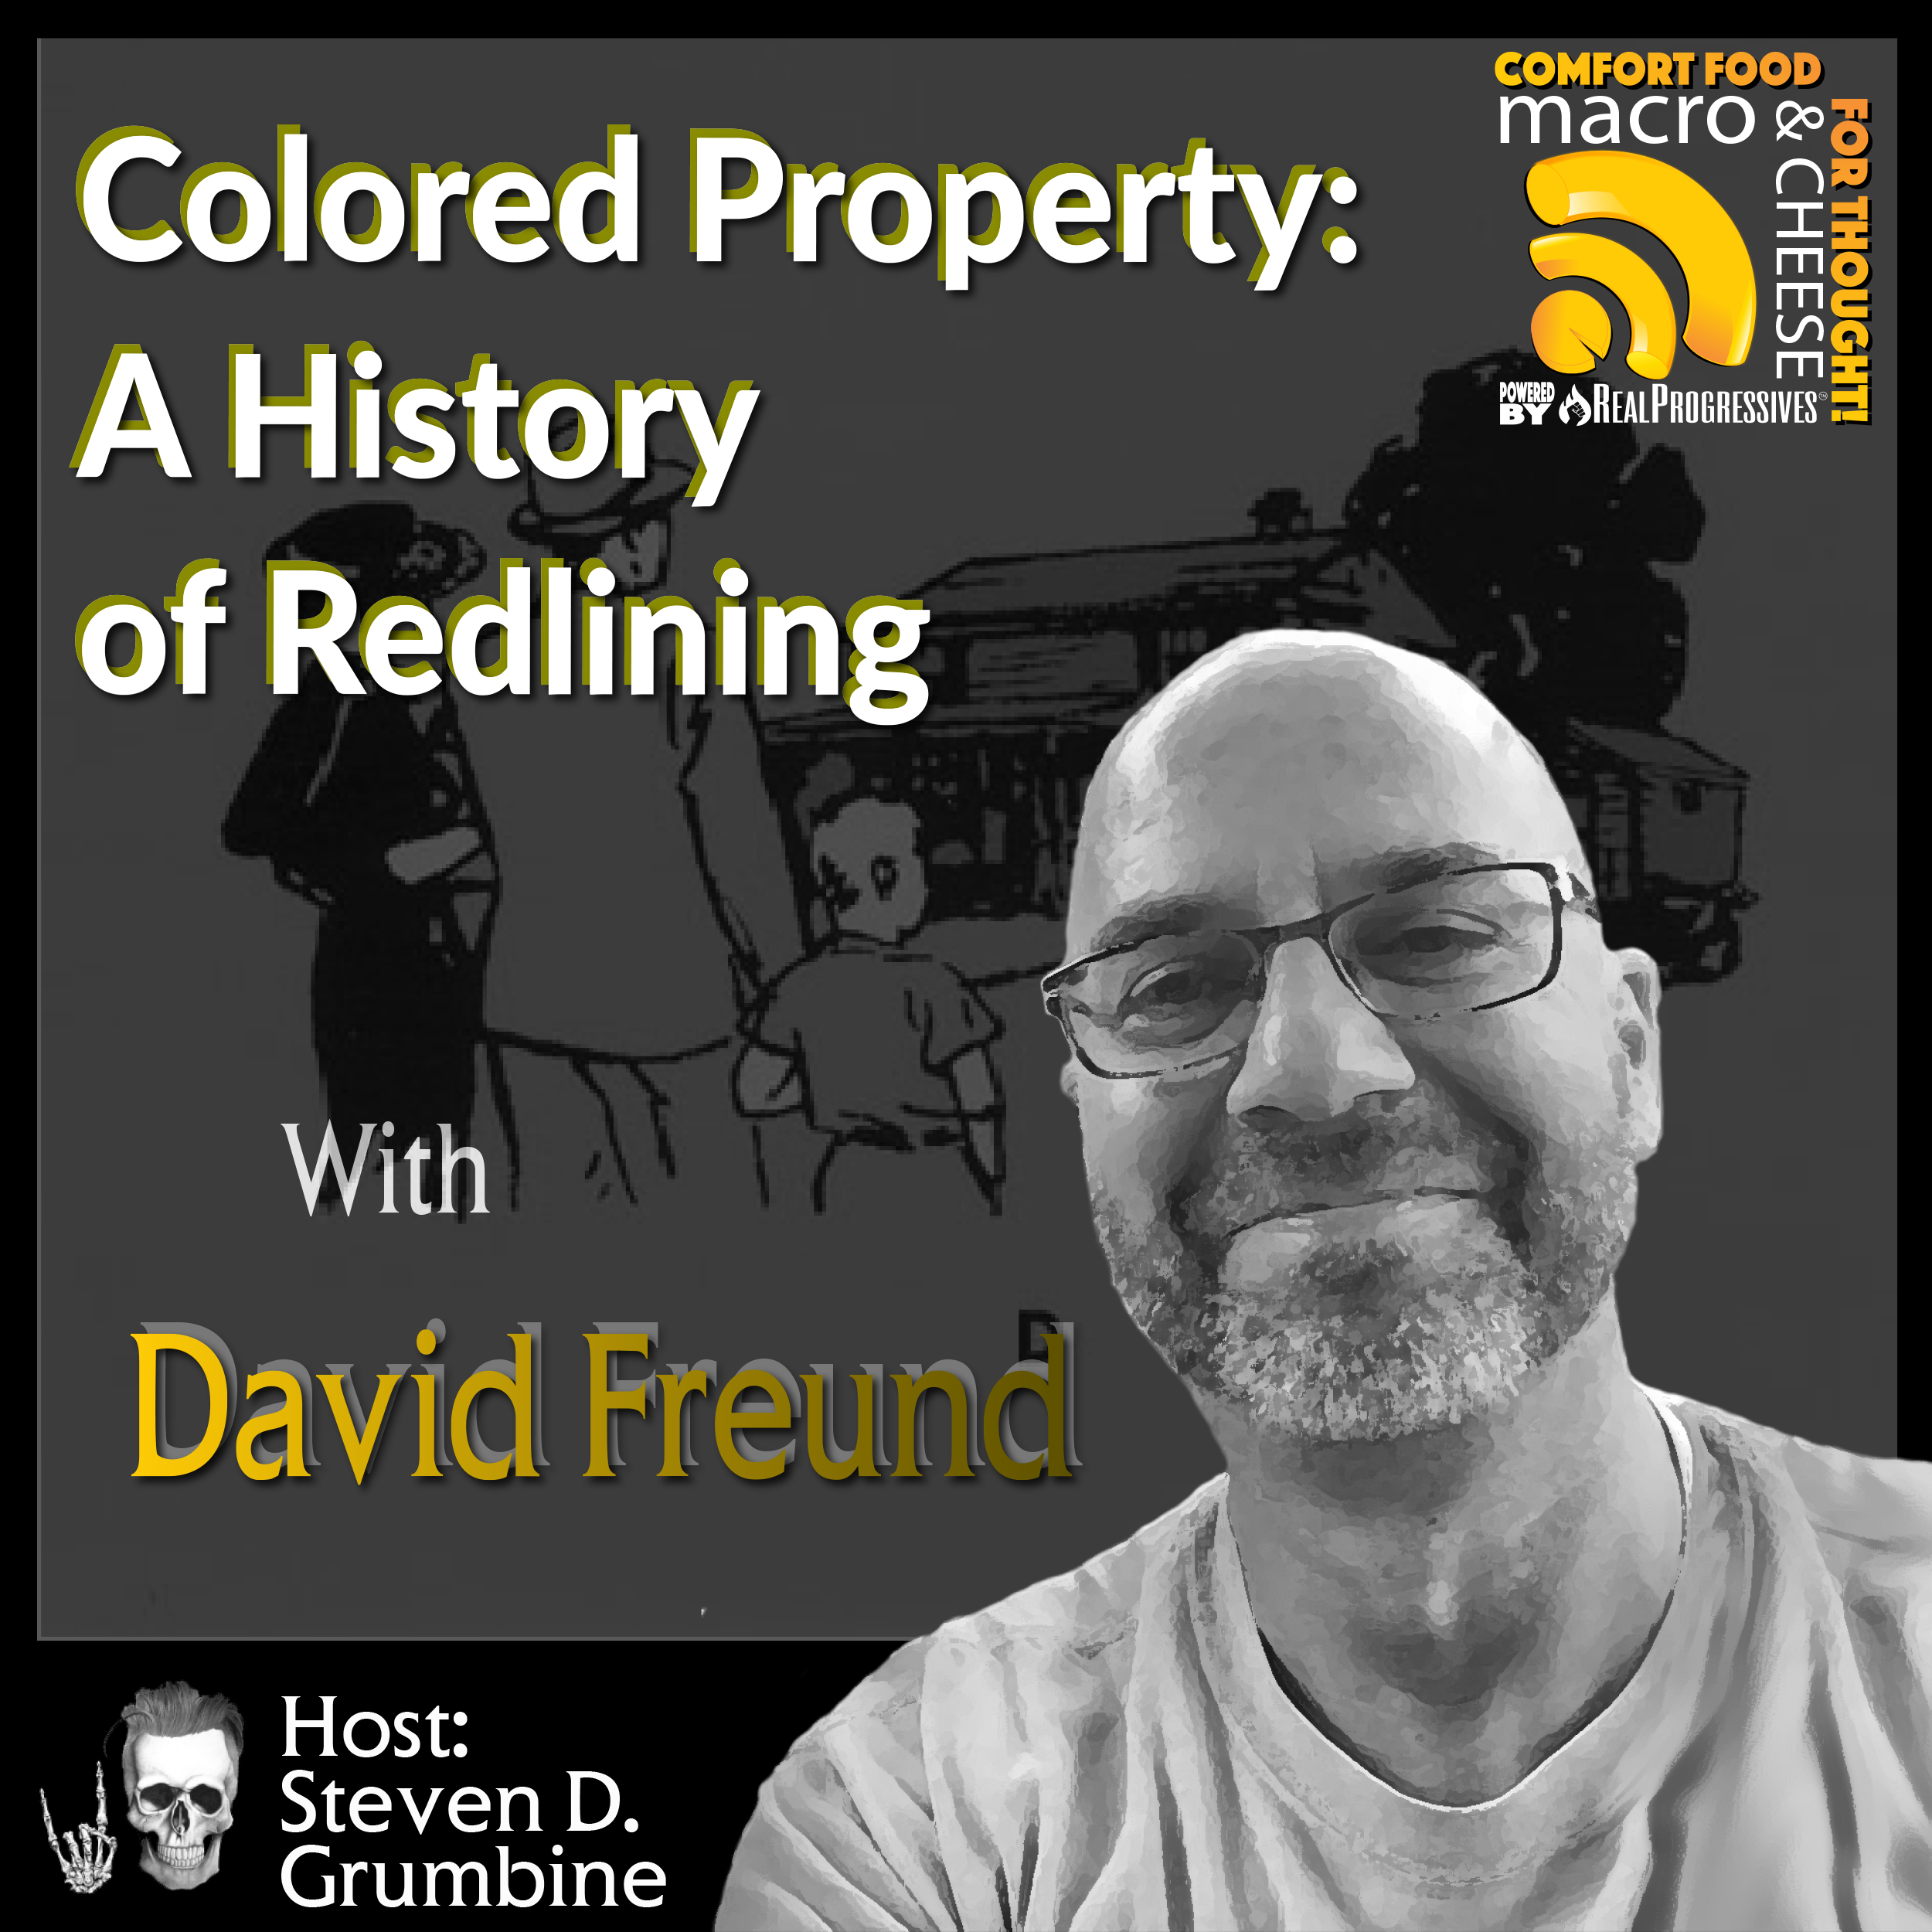 Colored Property: A History of Redlining with David Freund